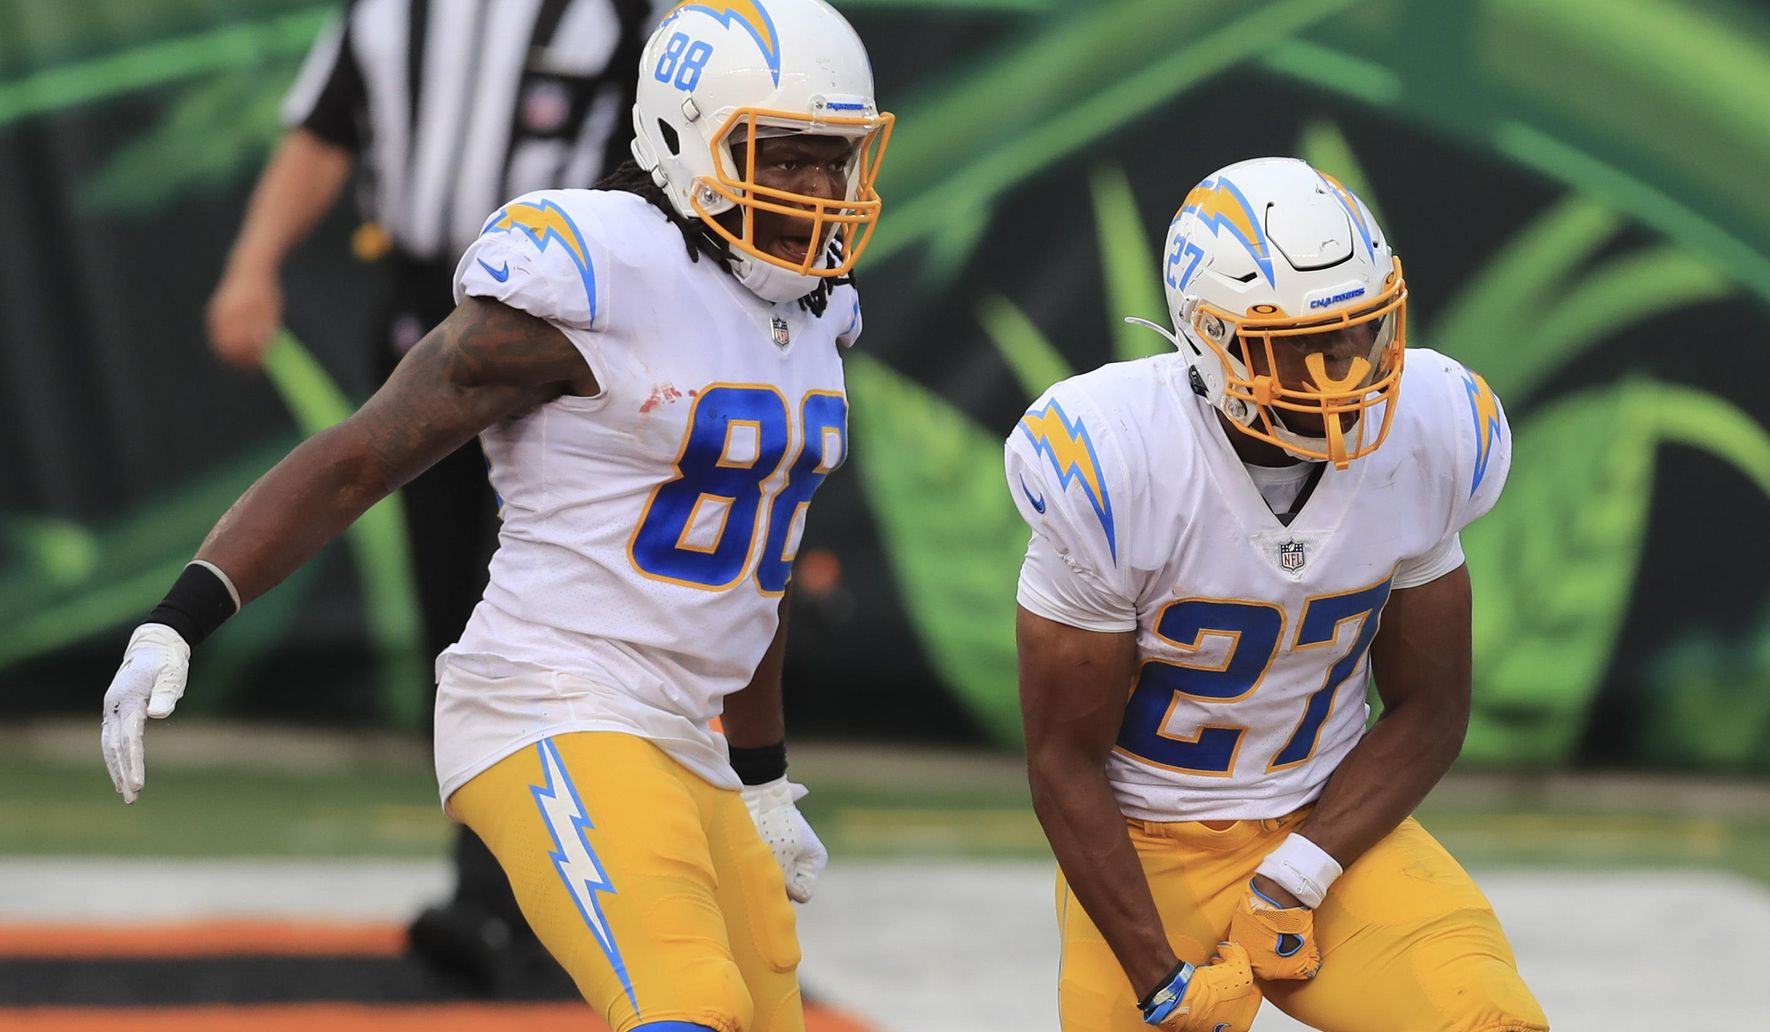 Chargers_bengals_football_13223_c0-122-2879-1800_s1770x1032